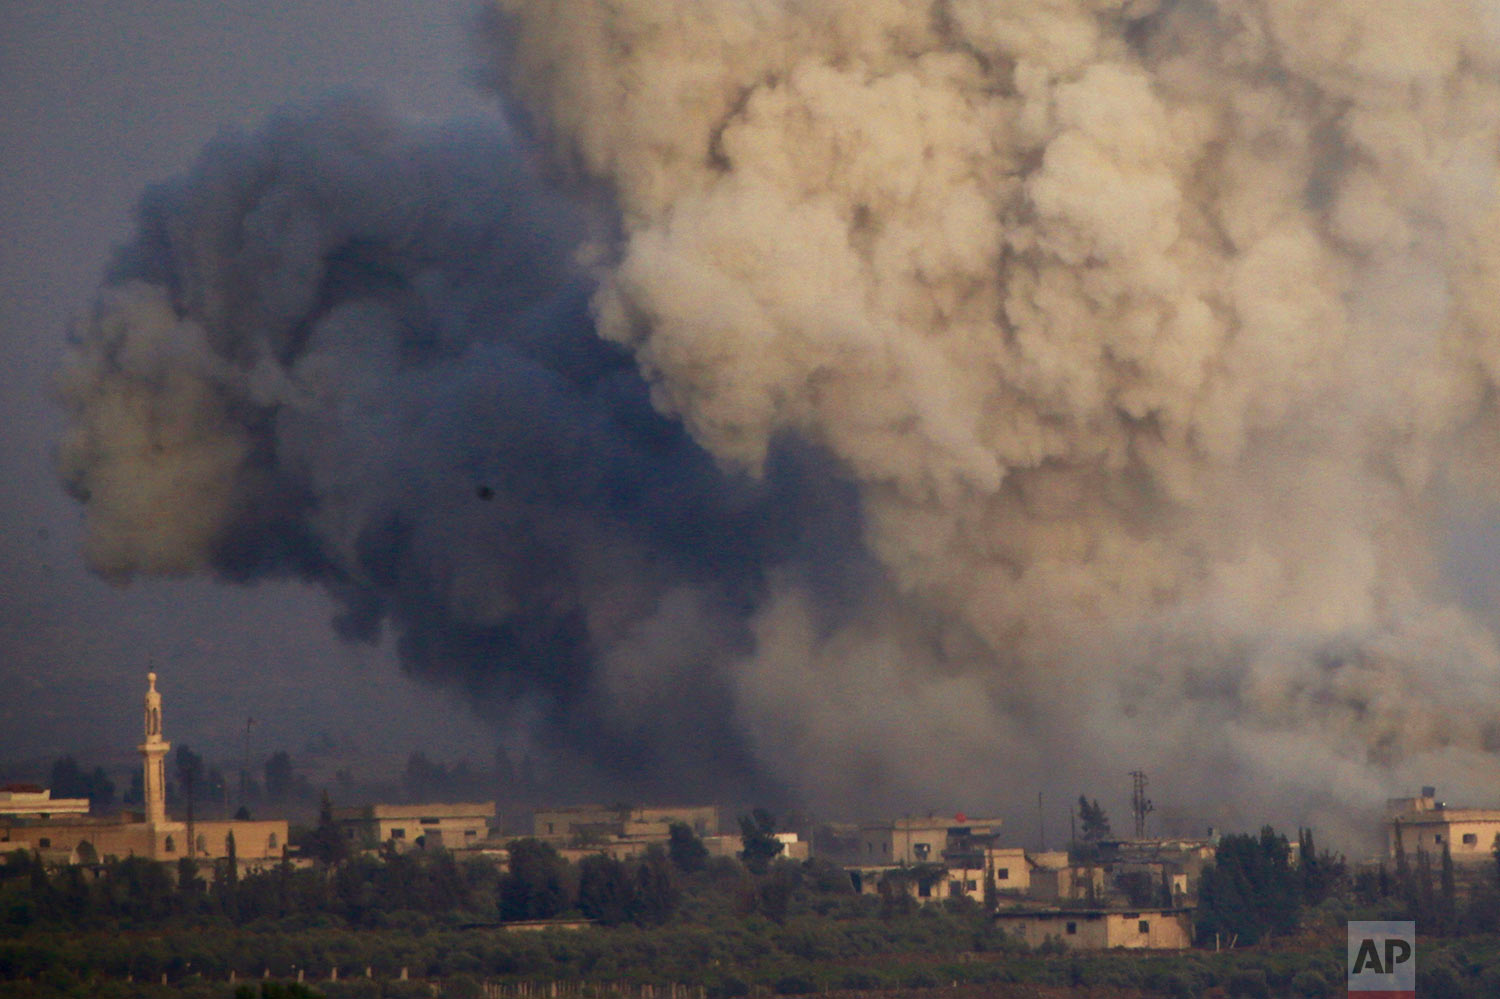 Smoke and explosions from the fighting between forces loyal to Syrian President Bashar Assad and rebels in southern Syria as seen from the Israeli-controlled Golan Heights, Wednesday, July 25, 2018. (AP Photo/Ariel Schalit)